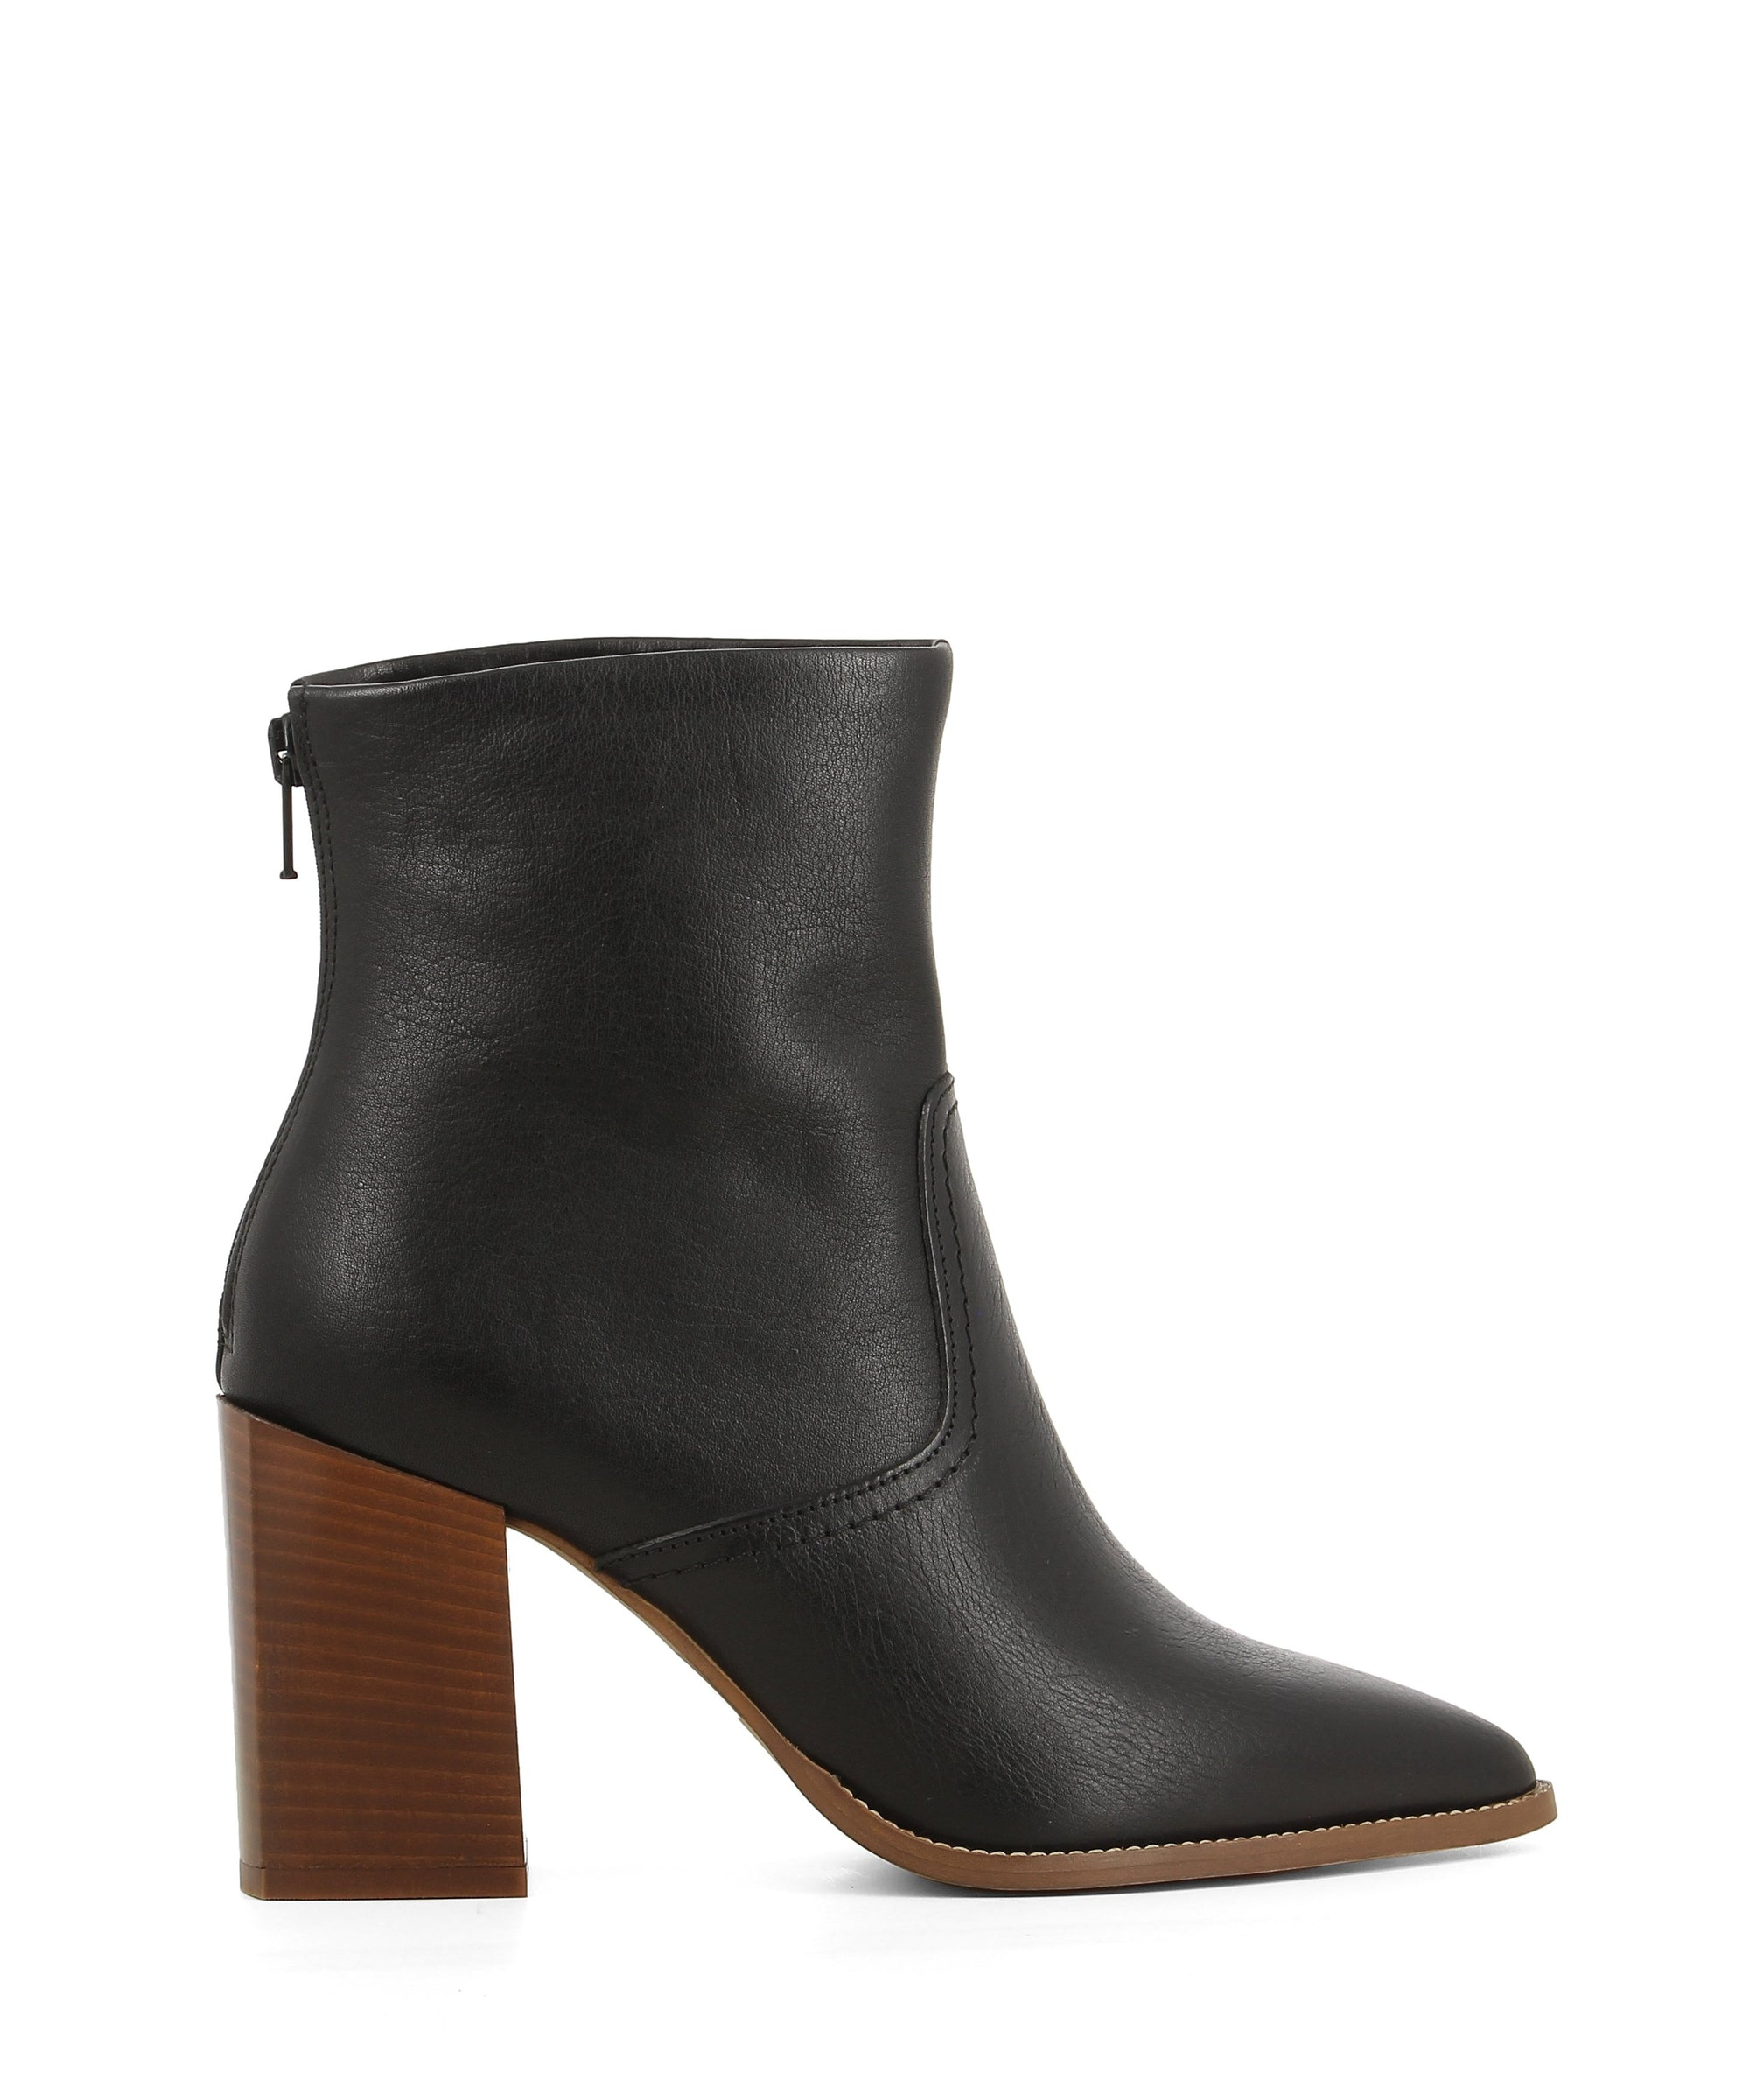 A black leather western style ankle boot featuring a back zipper fastening, top stitching, a wooden block heel, and a pointed toe. Made by Christian Di Riccio. This style runs true to size.